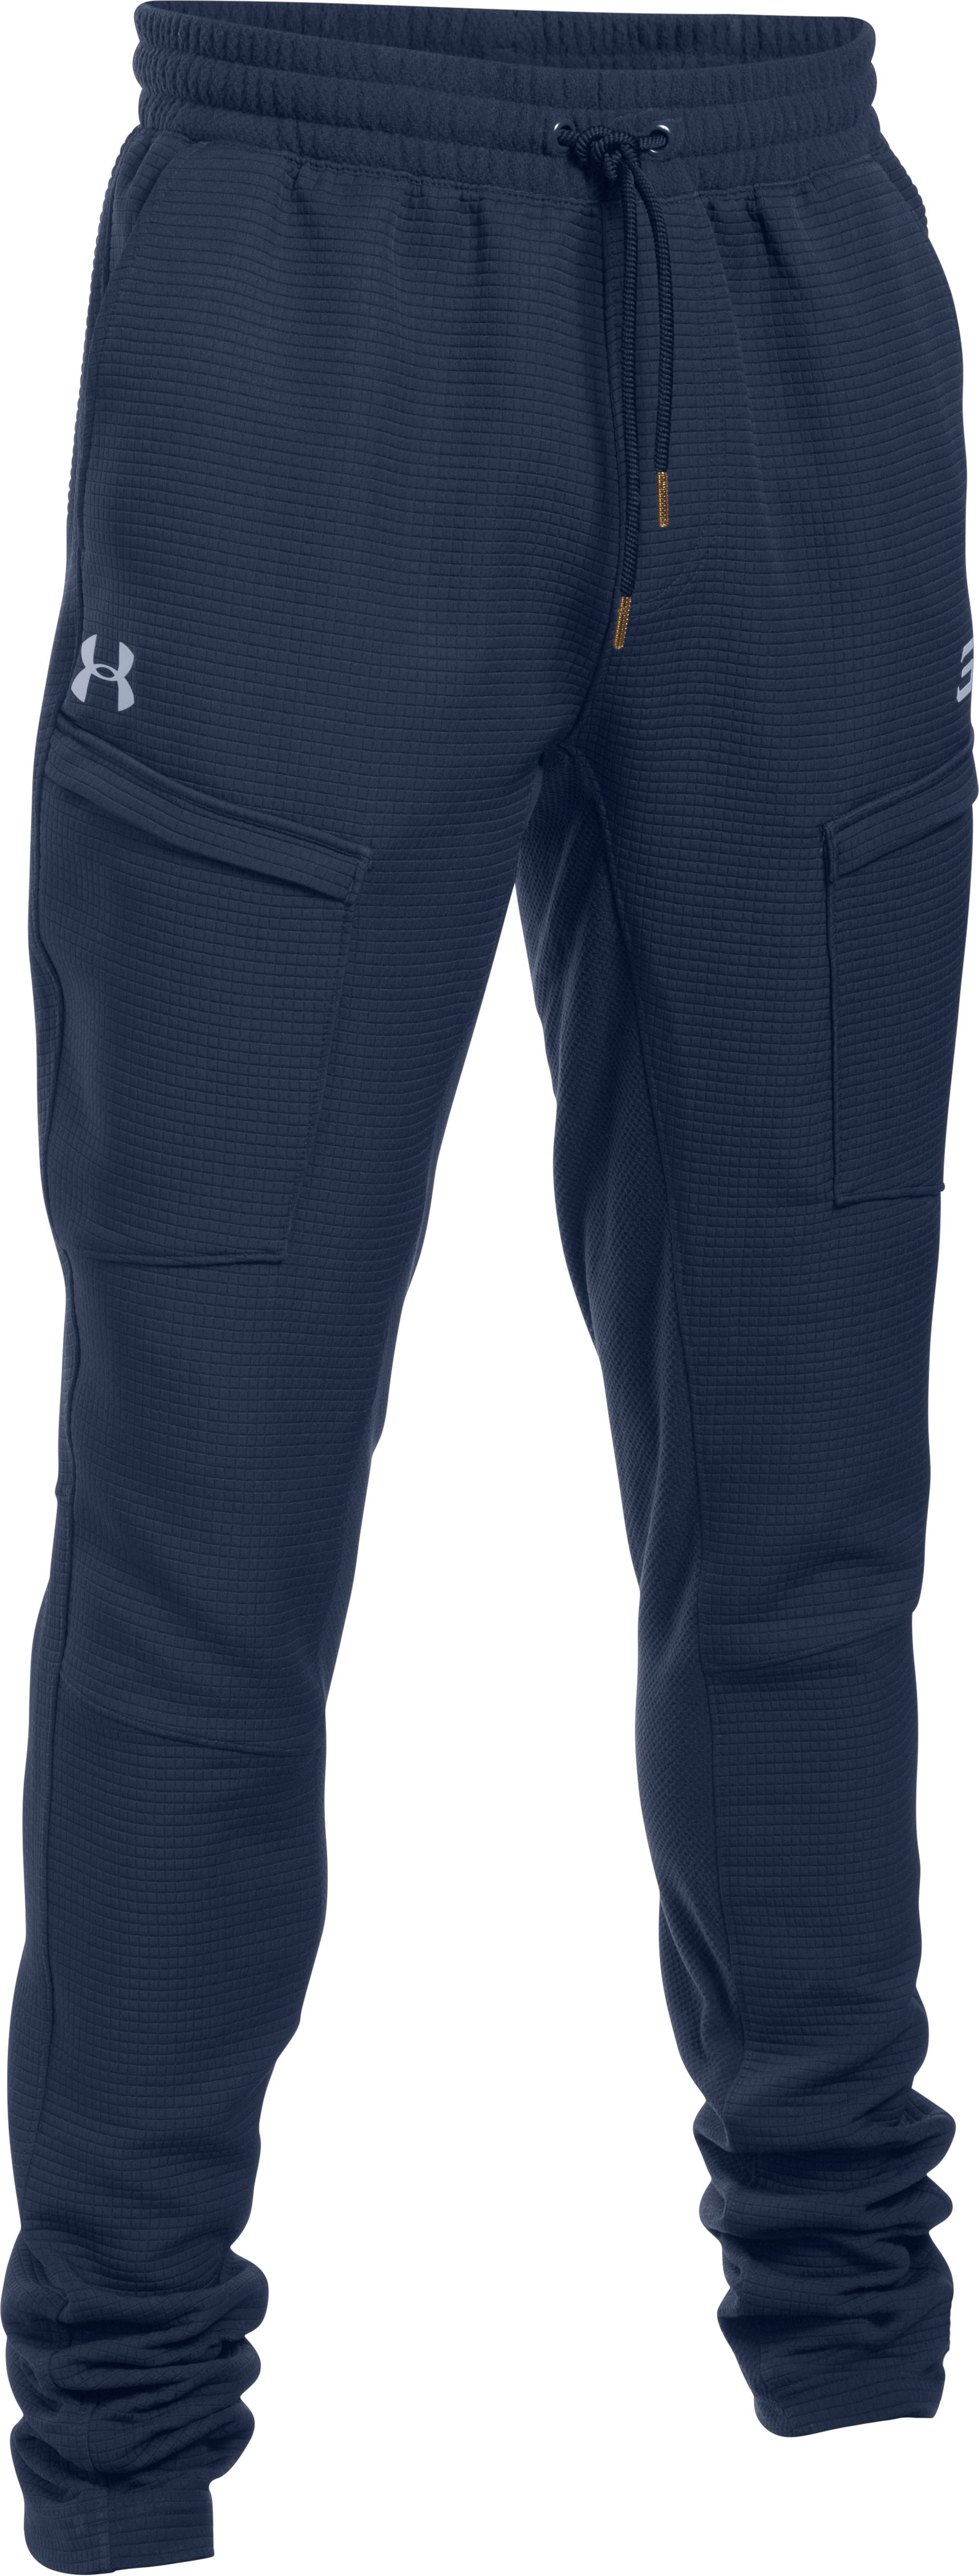 Men's SC30 Stacked Pants, Midnight Navy,